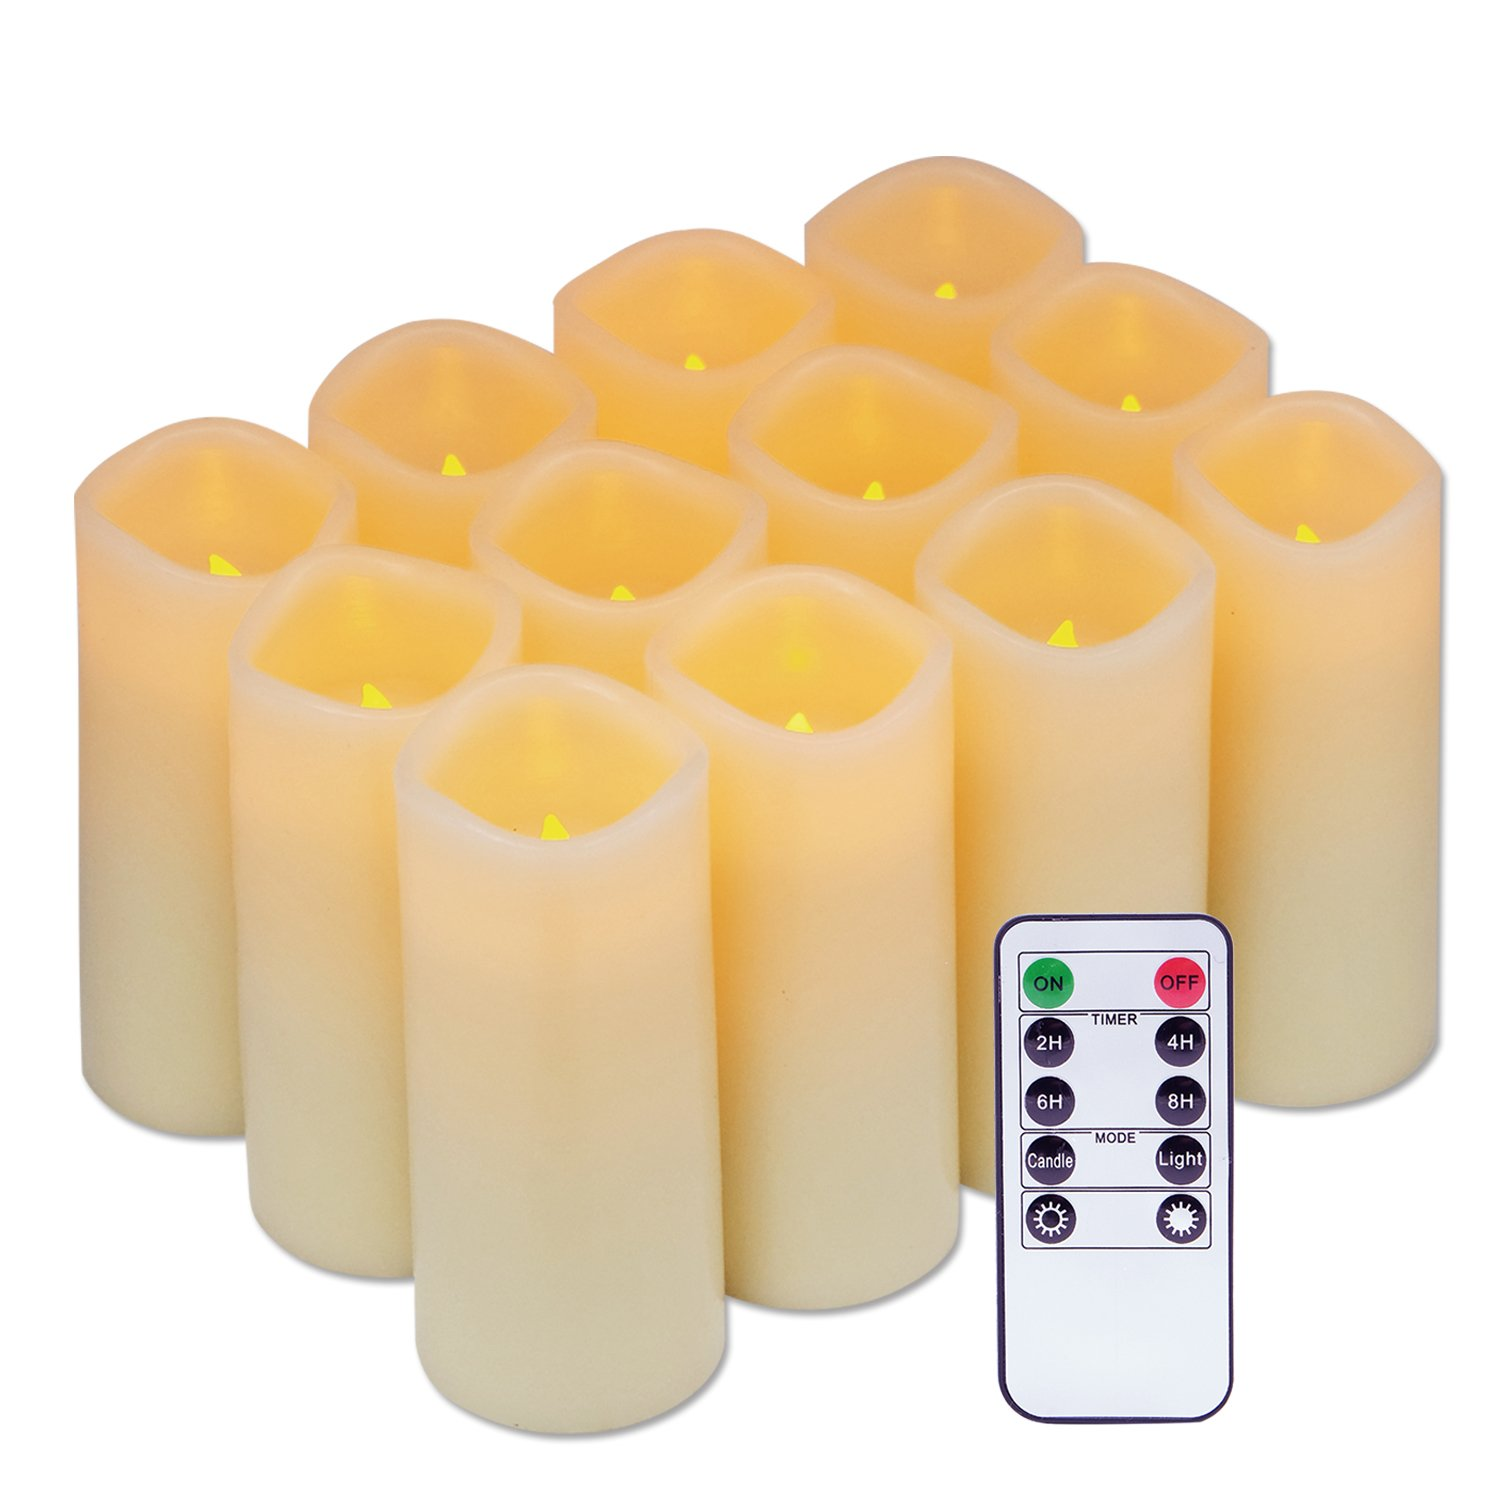 Eldnacele Flameless Candles Flickering Real Wax LED Battery Operated Candles Set of 12 D2.2 X H5 Pillar Candles Ivory Warm Light with Remote Control and Timer for Home and Wedding Decoration